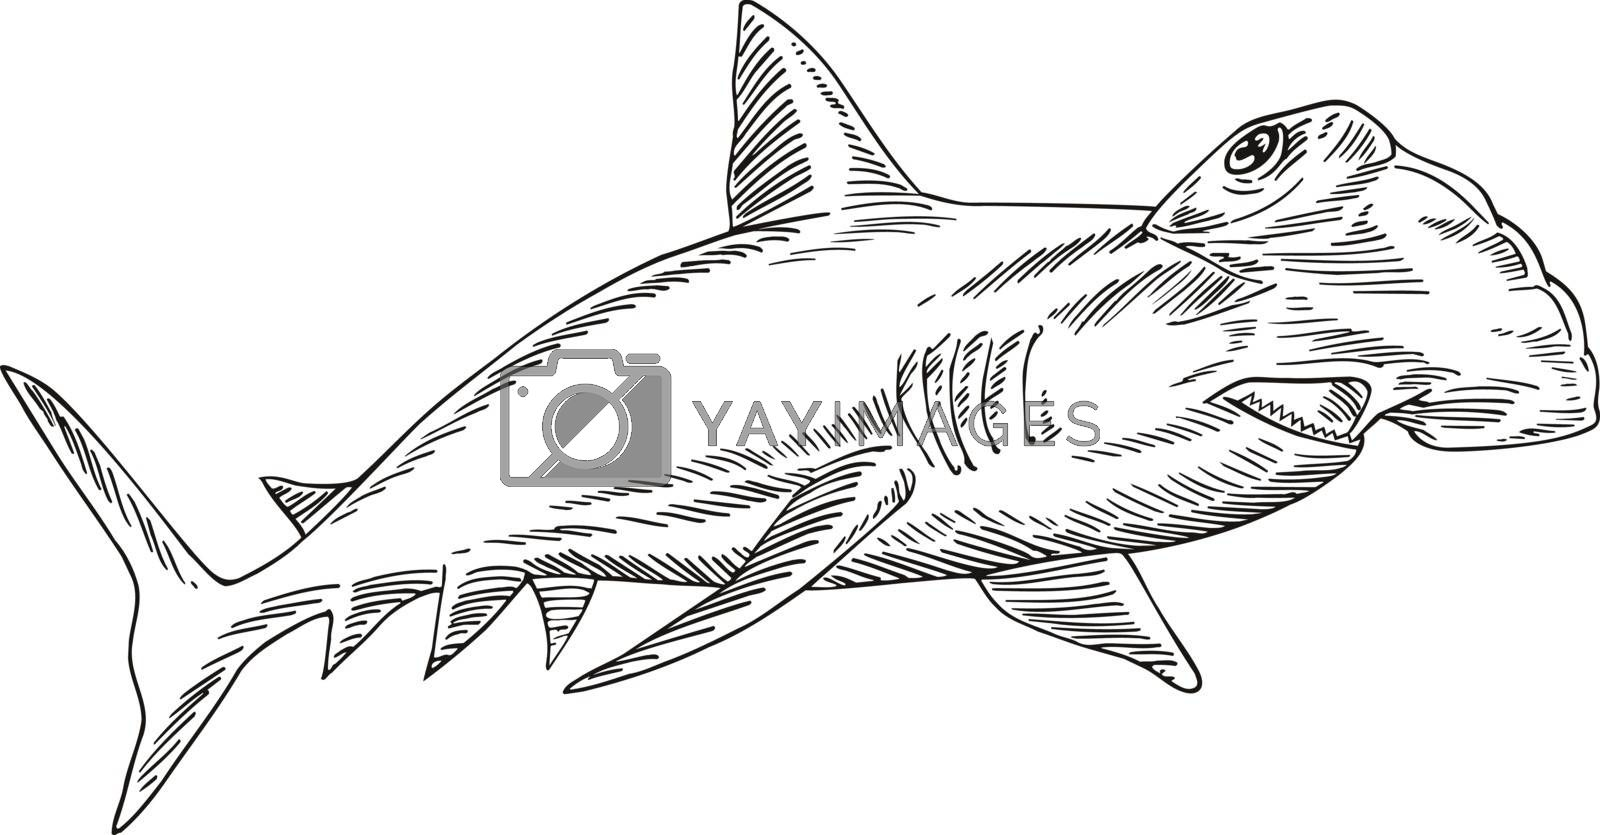 Etching style illustration of a  great hammerhead Sphyrna mokarran, the largest species of hammerhead shark to the family Sphyrnidae done on scraperboard scratchboard style on isolated background.